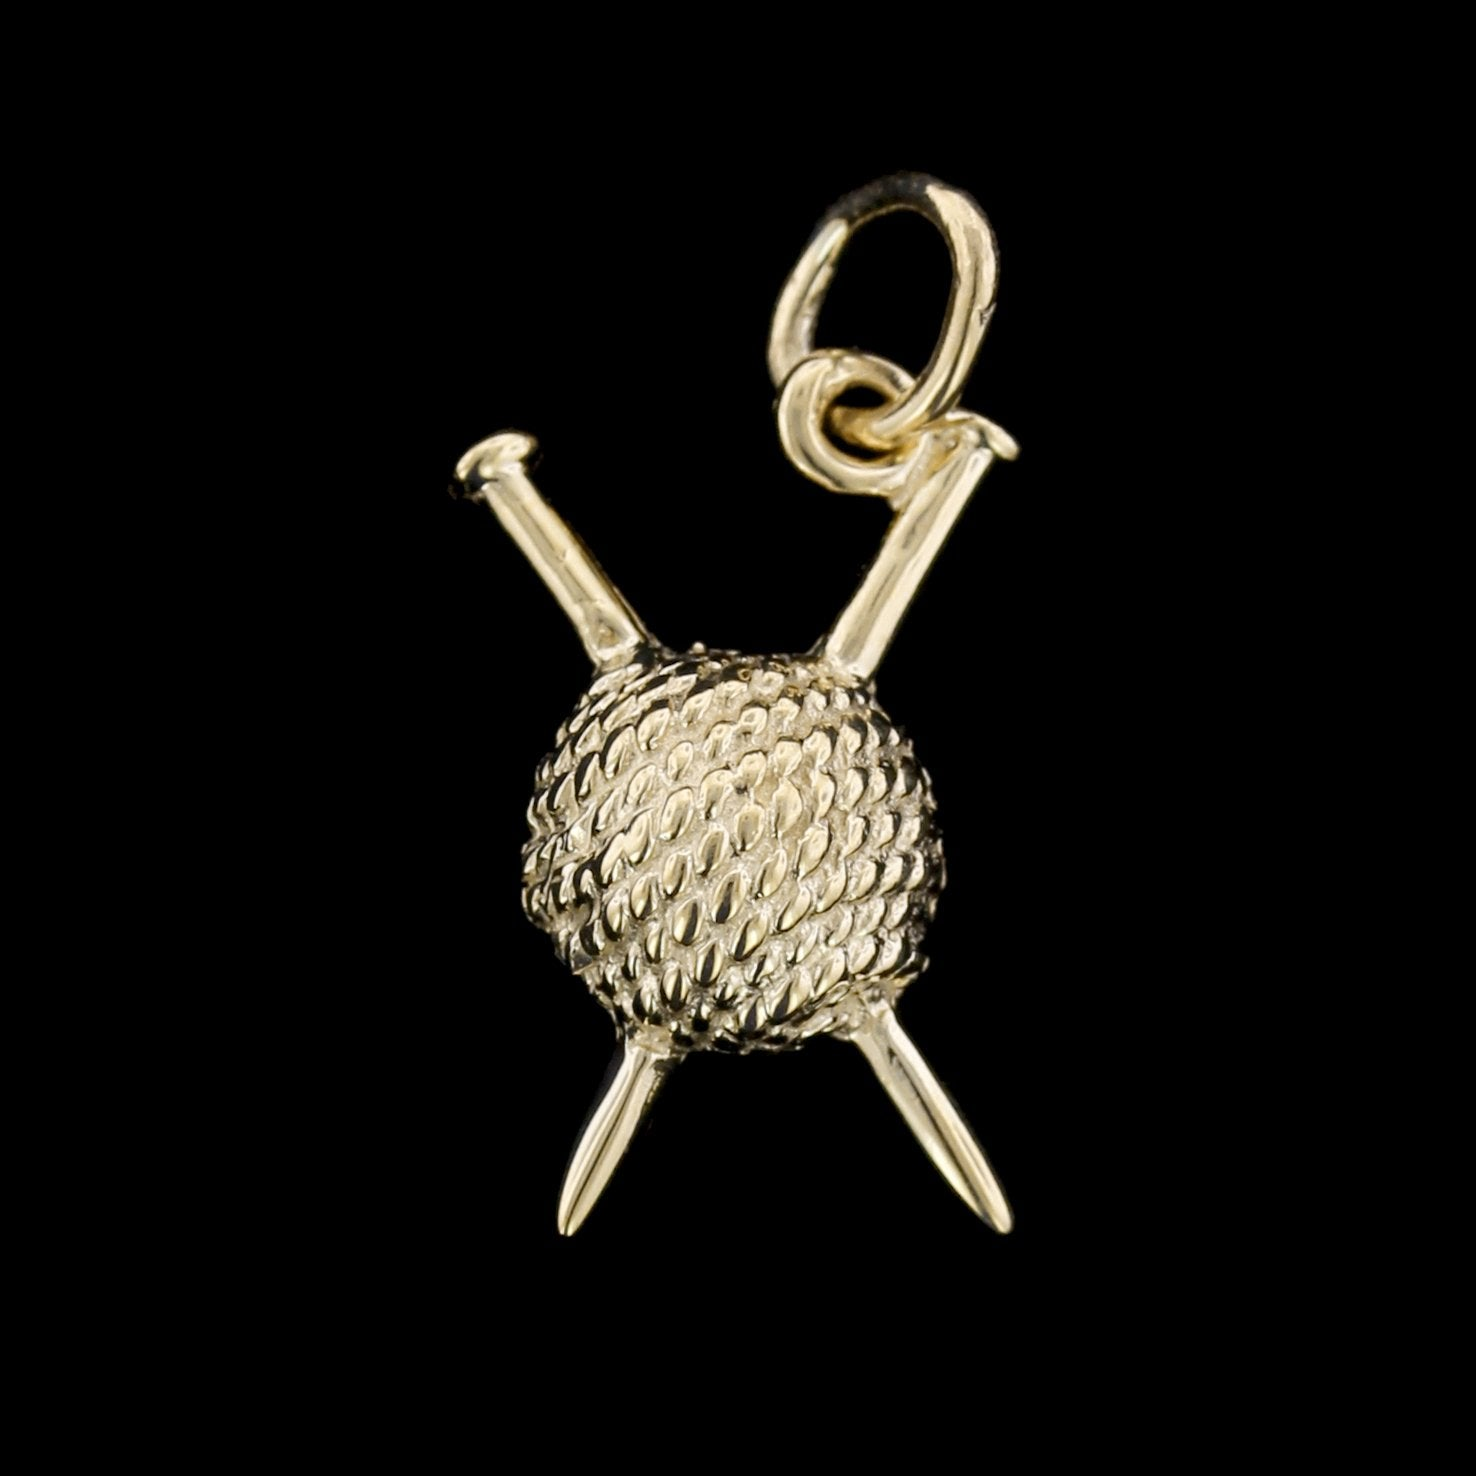 14K Yellow Gold Ball of Yarn with Knitting Needles Charm